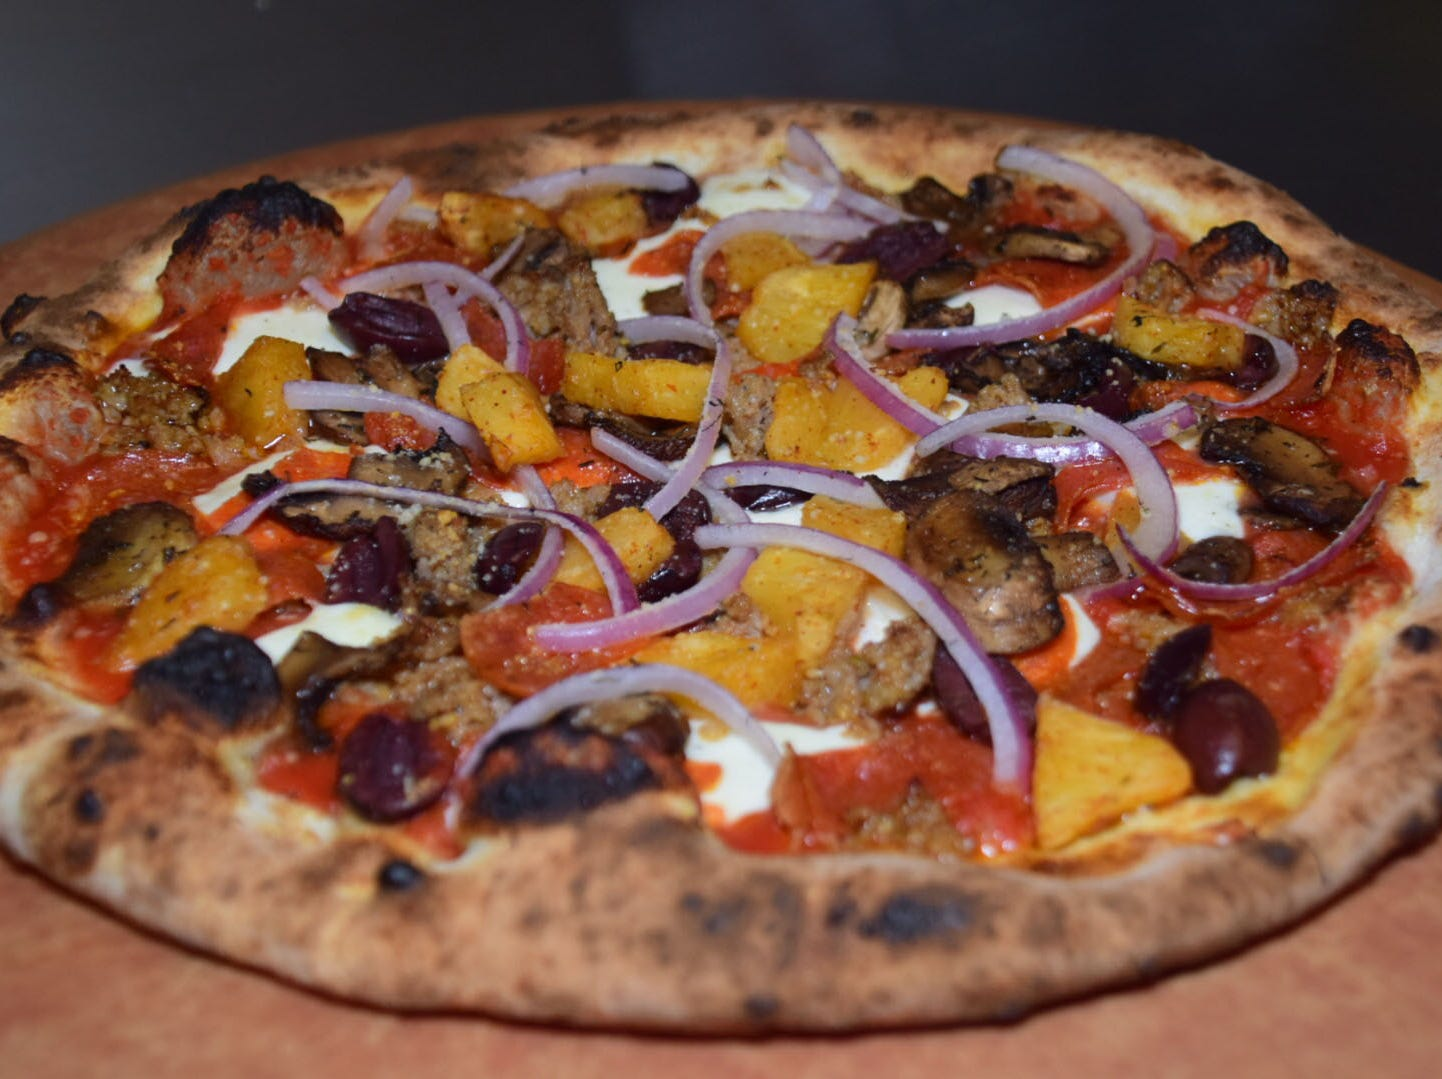 While established pizza recipes are named after famous boxers, but custom orders are always welcome at Hard Knox Pizza.